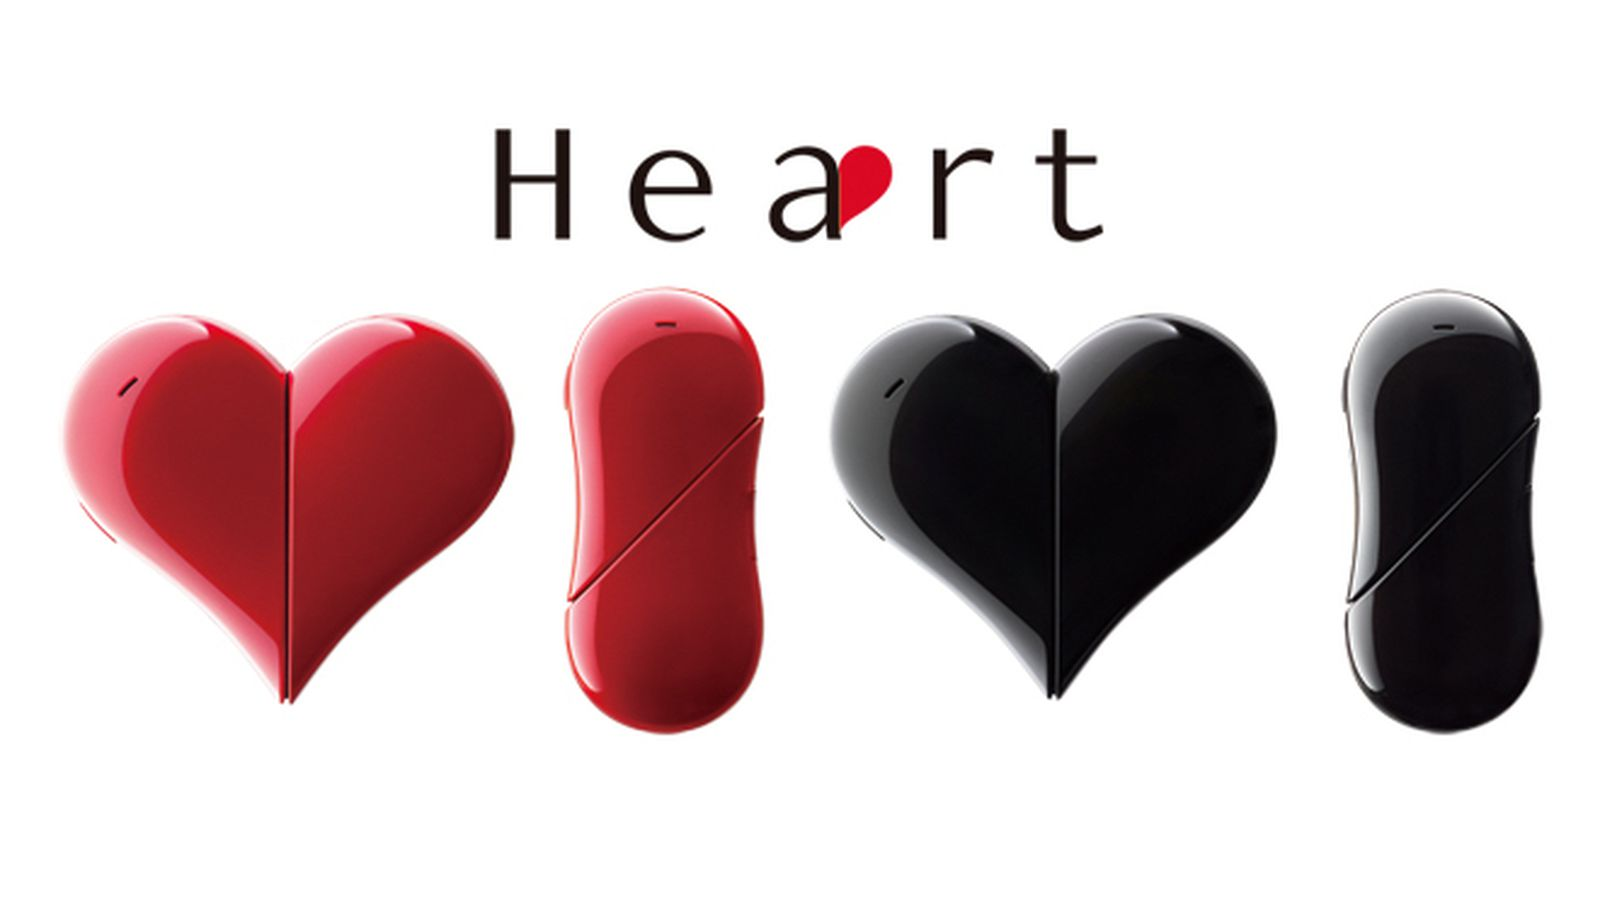 Soon You Can Buy A Bizarre Heart Shaped Phone In Japan The Verge